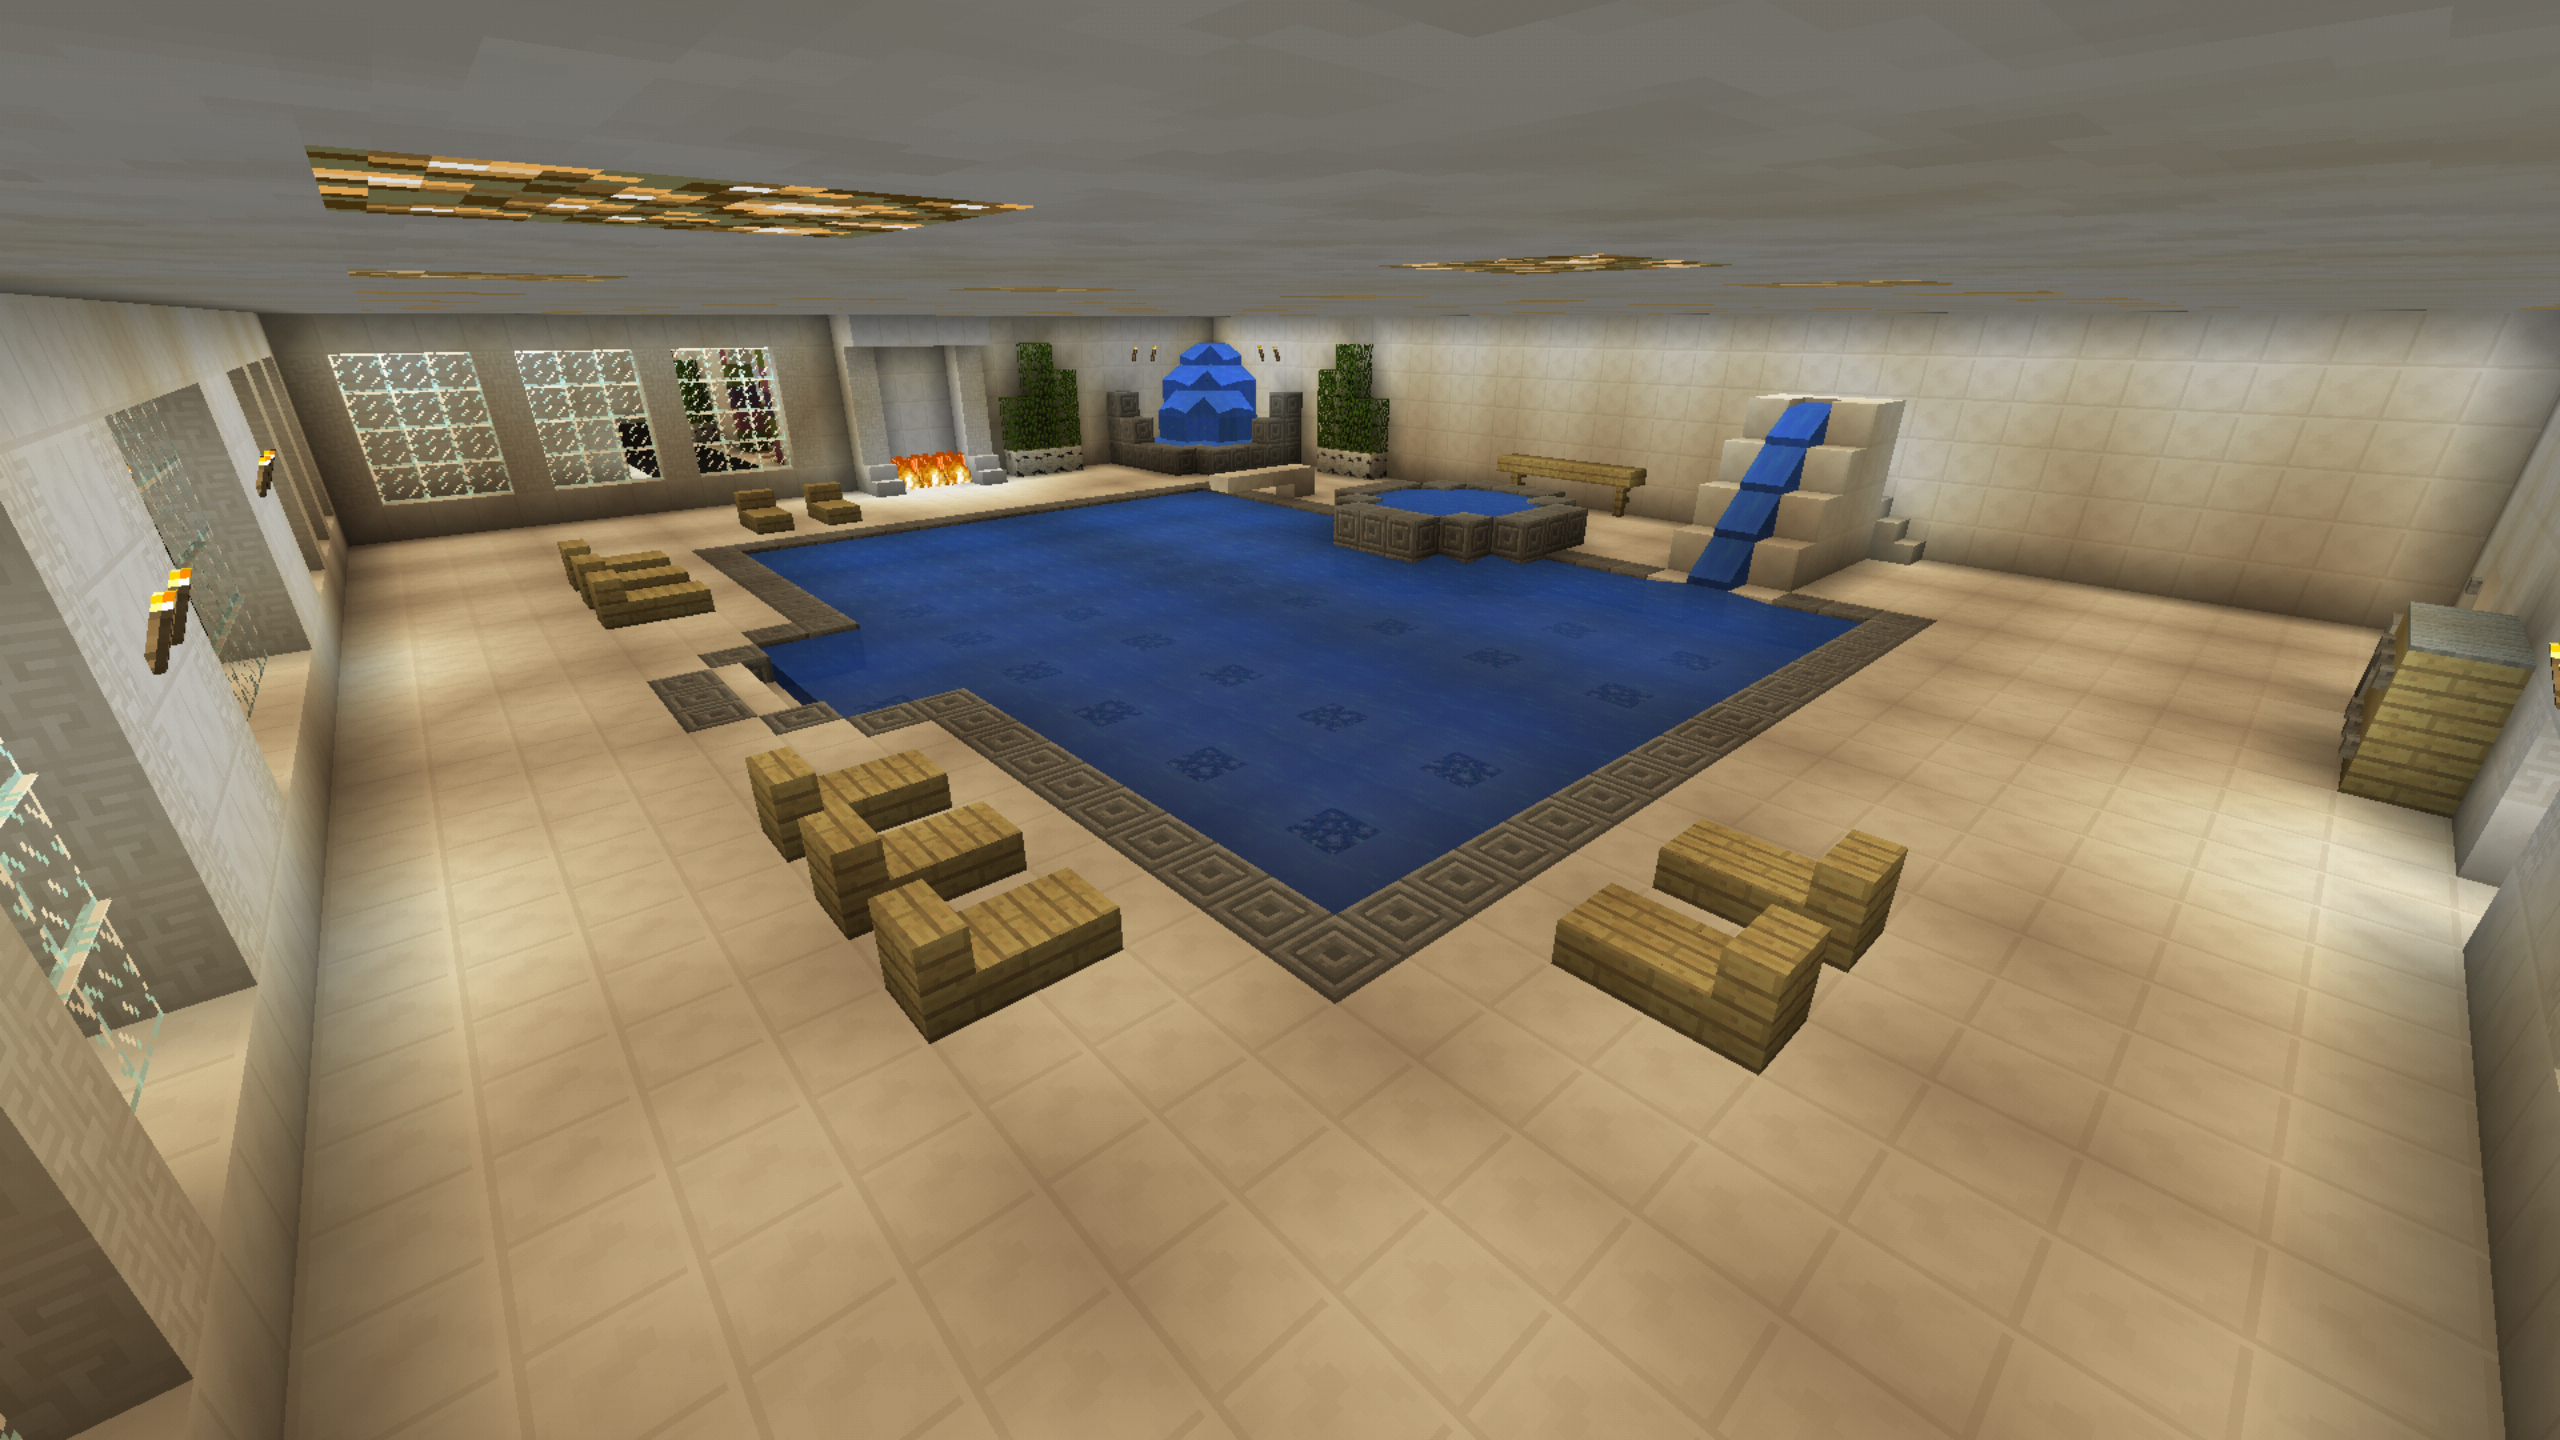 Minecraft Swimming Diving Board Water Slide Pool Hot Tub Jacuzzi Pool Hot Tub Diving Board Hot Tub Landscaping